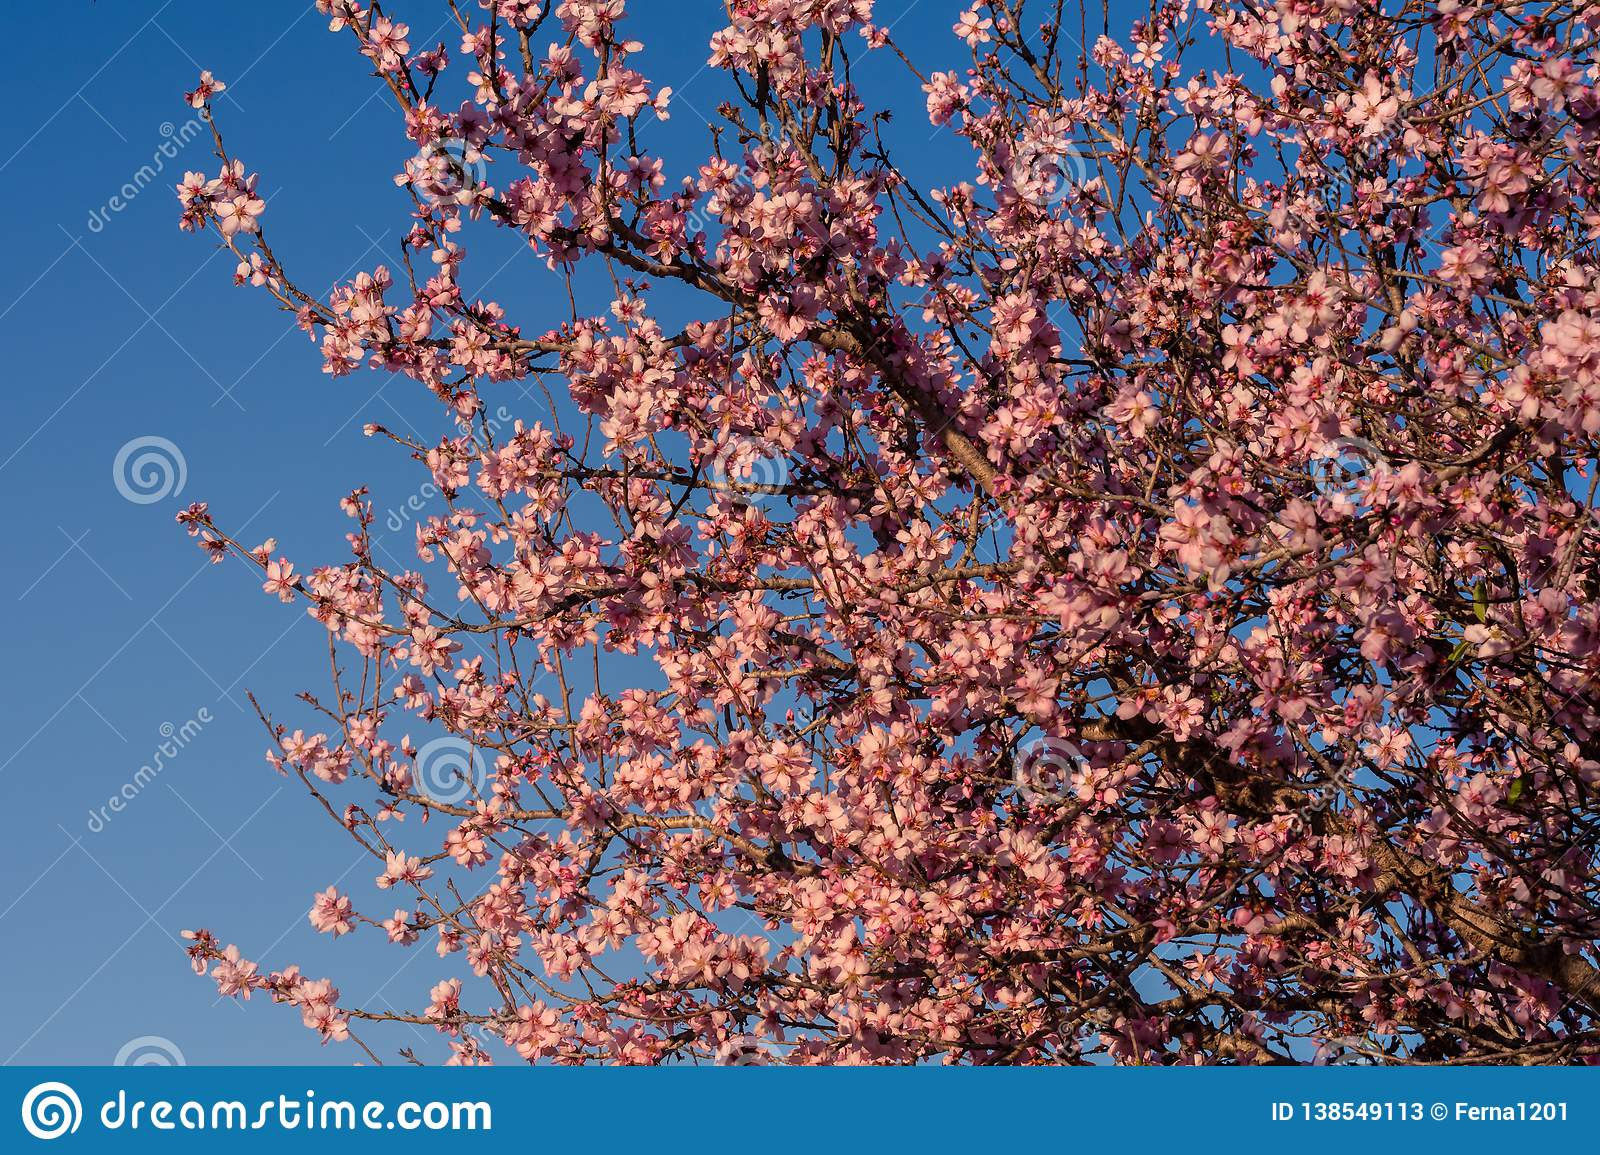 Spring blossom background. Beautiful nature scene with blooming tree and sun flare. Spring almond flowers. Beautiful Abstract